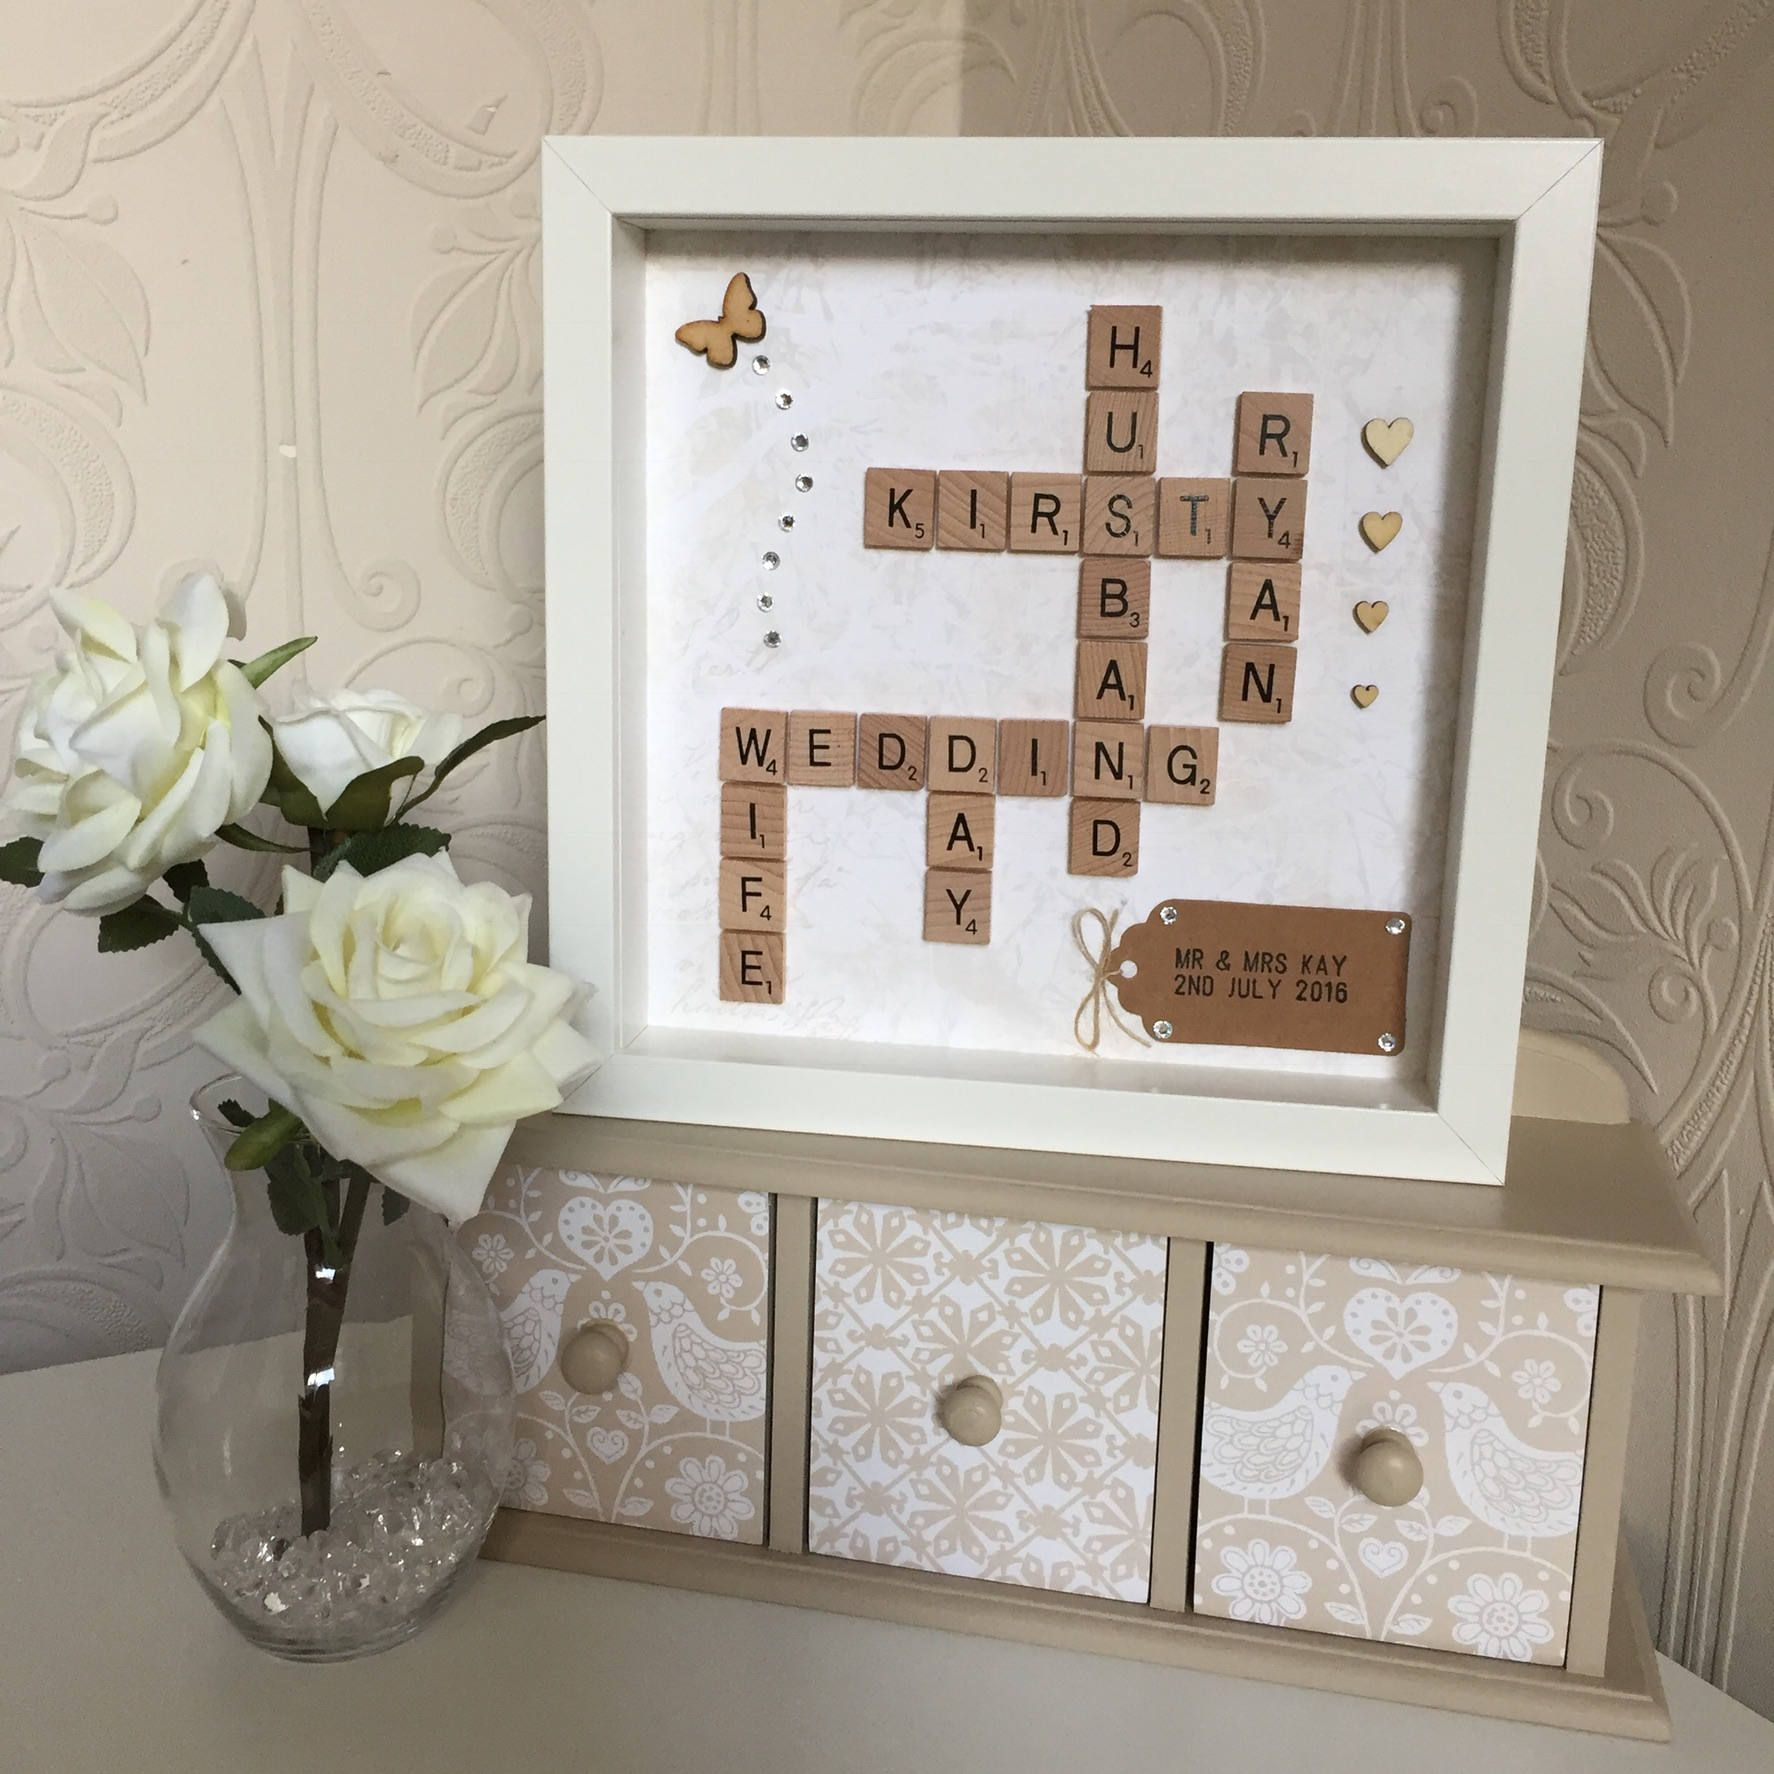 Wedding anniversary decoration ideas at home  Personalised Scrabble Art Wedding Day Frame Personalised Wedding